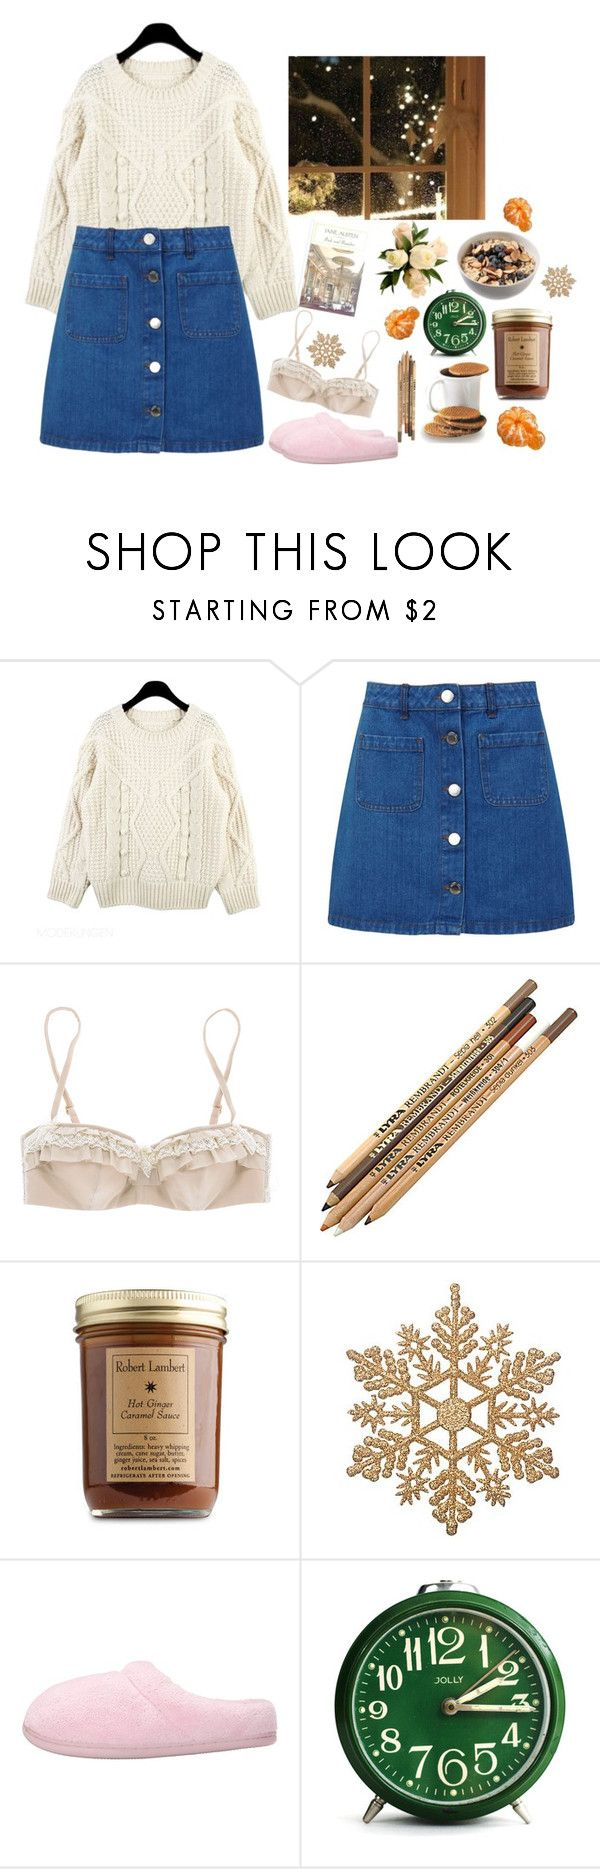 """""""My Winter****"""" by alyonakiss ❤ liked on Polyvore featuring interior, interiors, interior design, home, home decor, interior decorating, Miss Selfridge, Myla, Hot Ginger and John Lewis"""